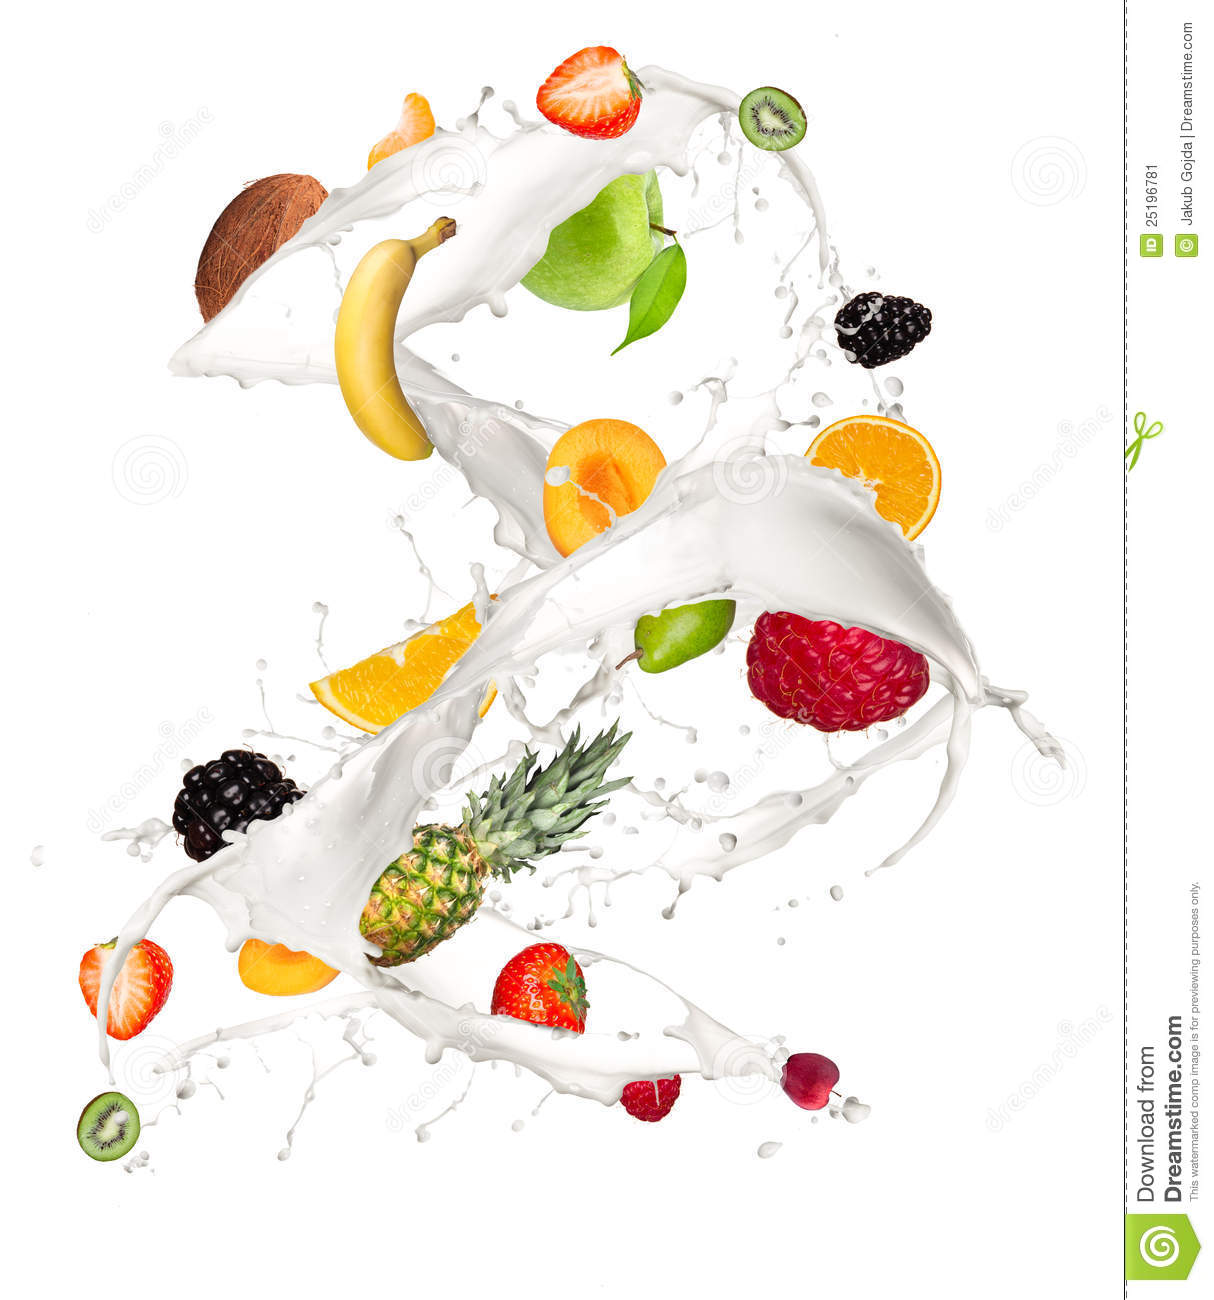 Fruit Mix Stock Image   Image  25196781